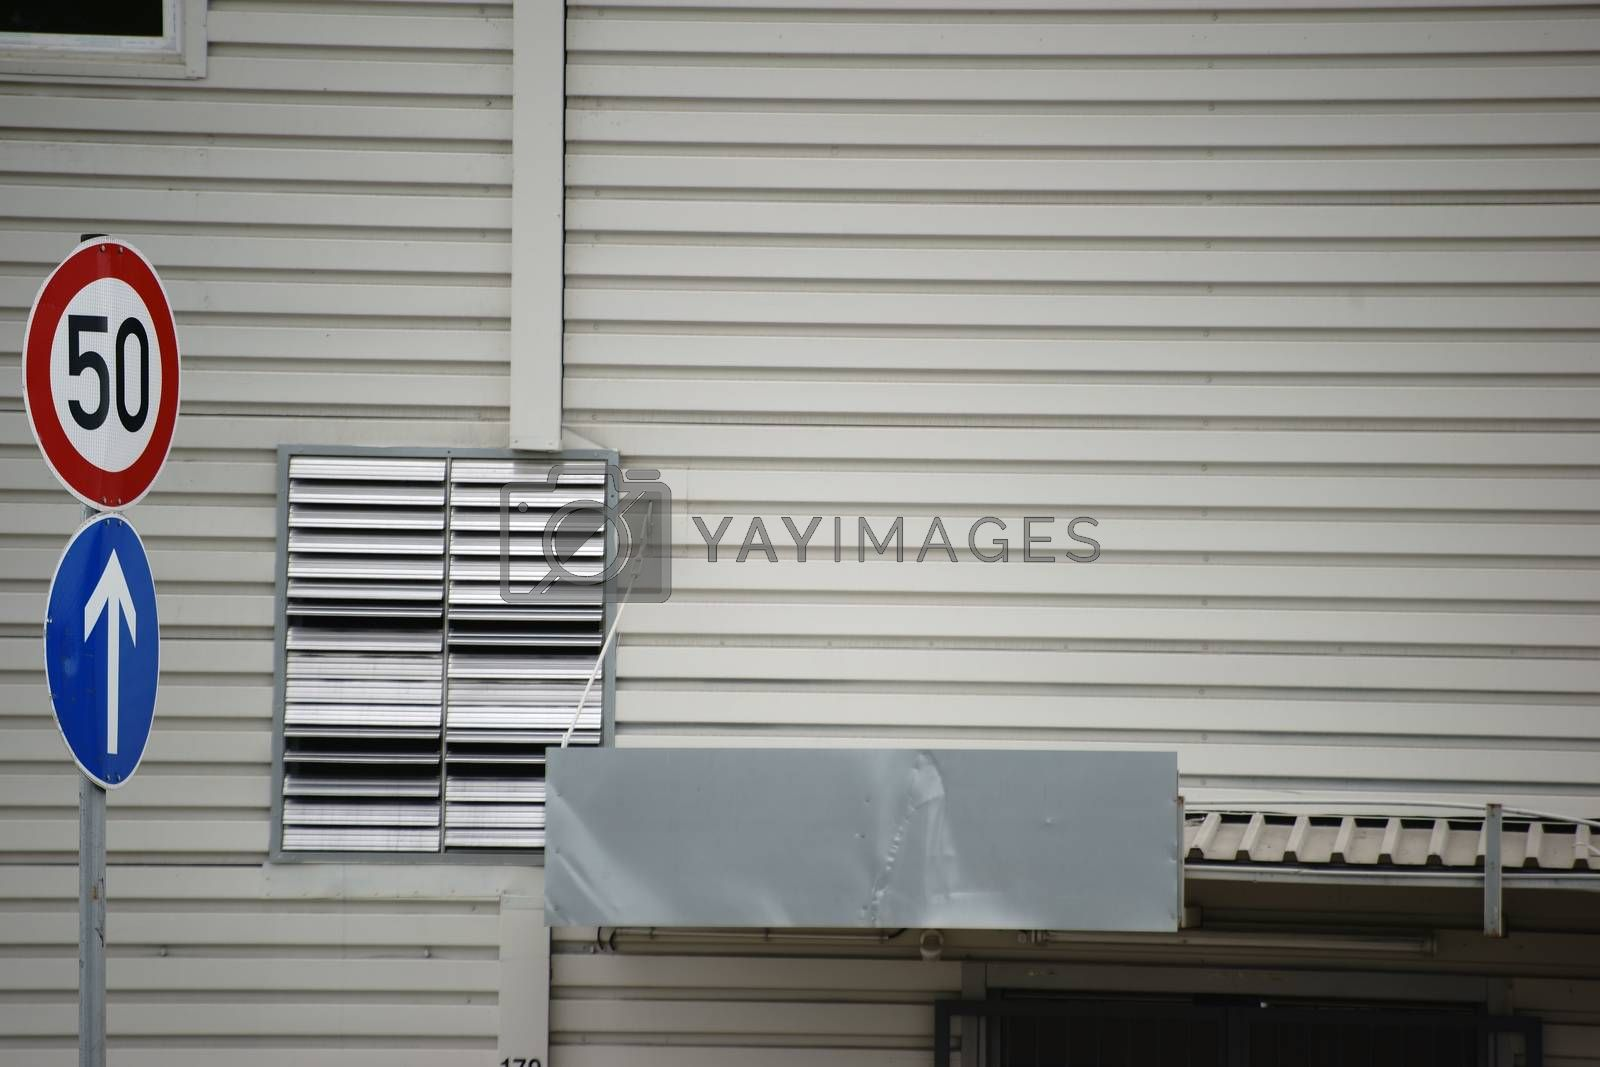 Roof boards and a ventilation grille with stainless steel on a wall of a public shopping building.